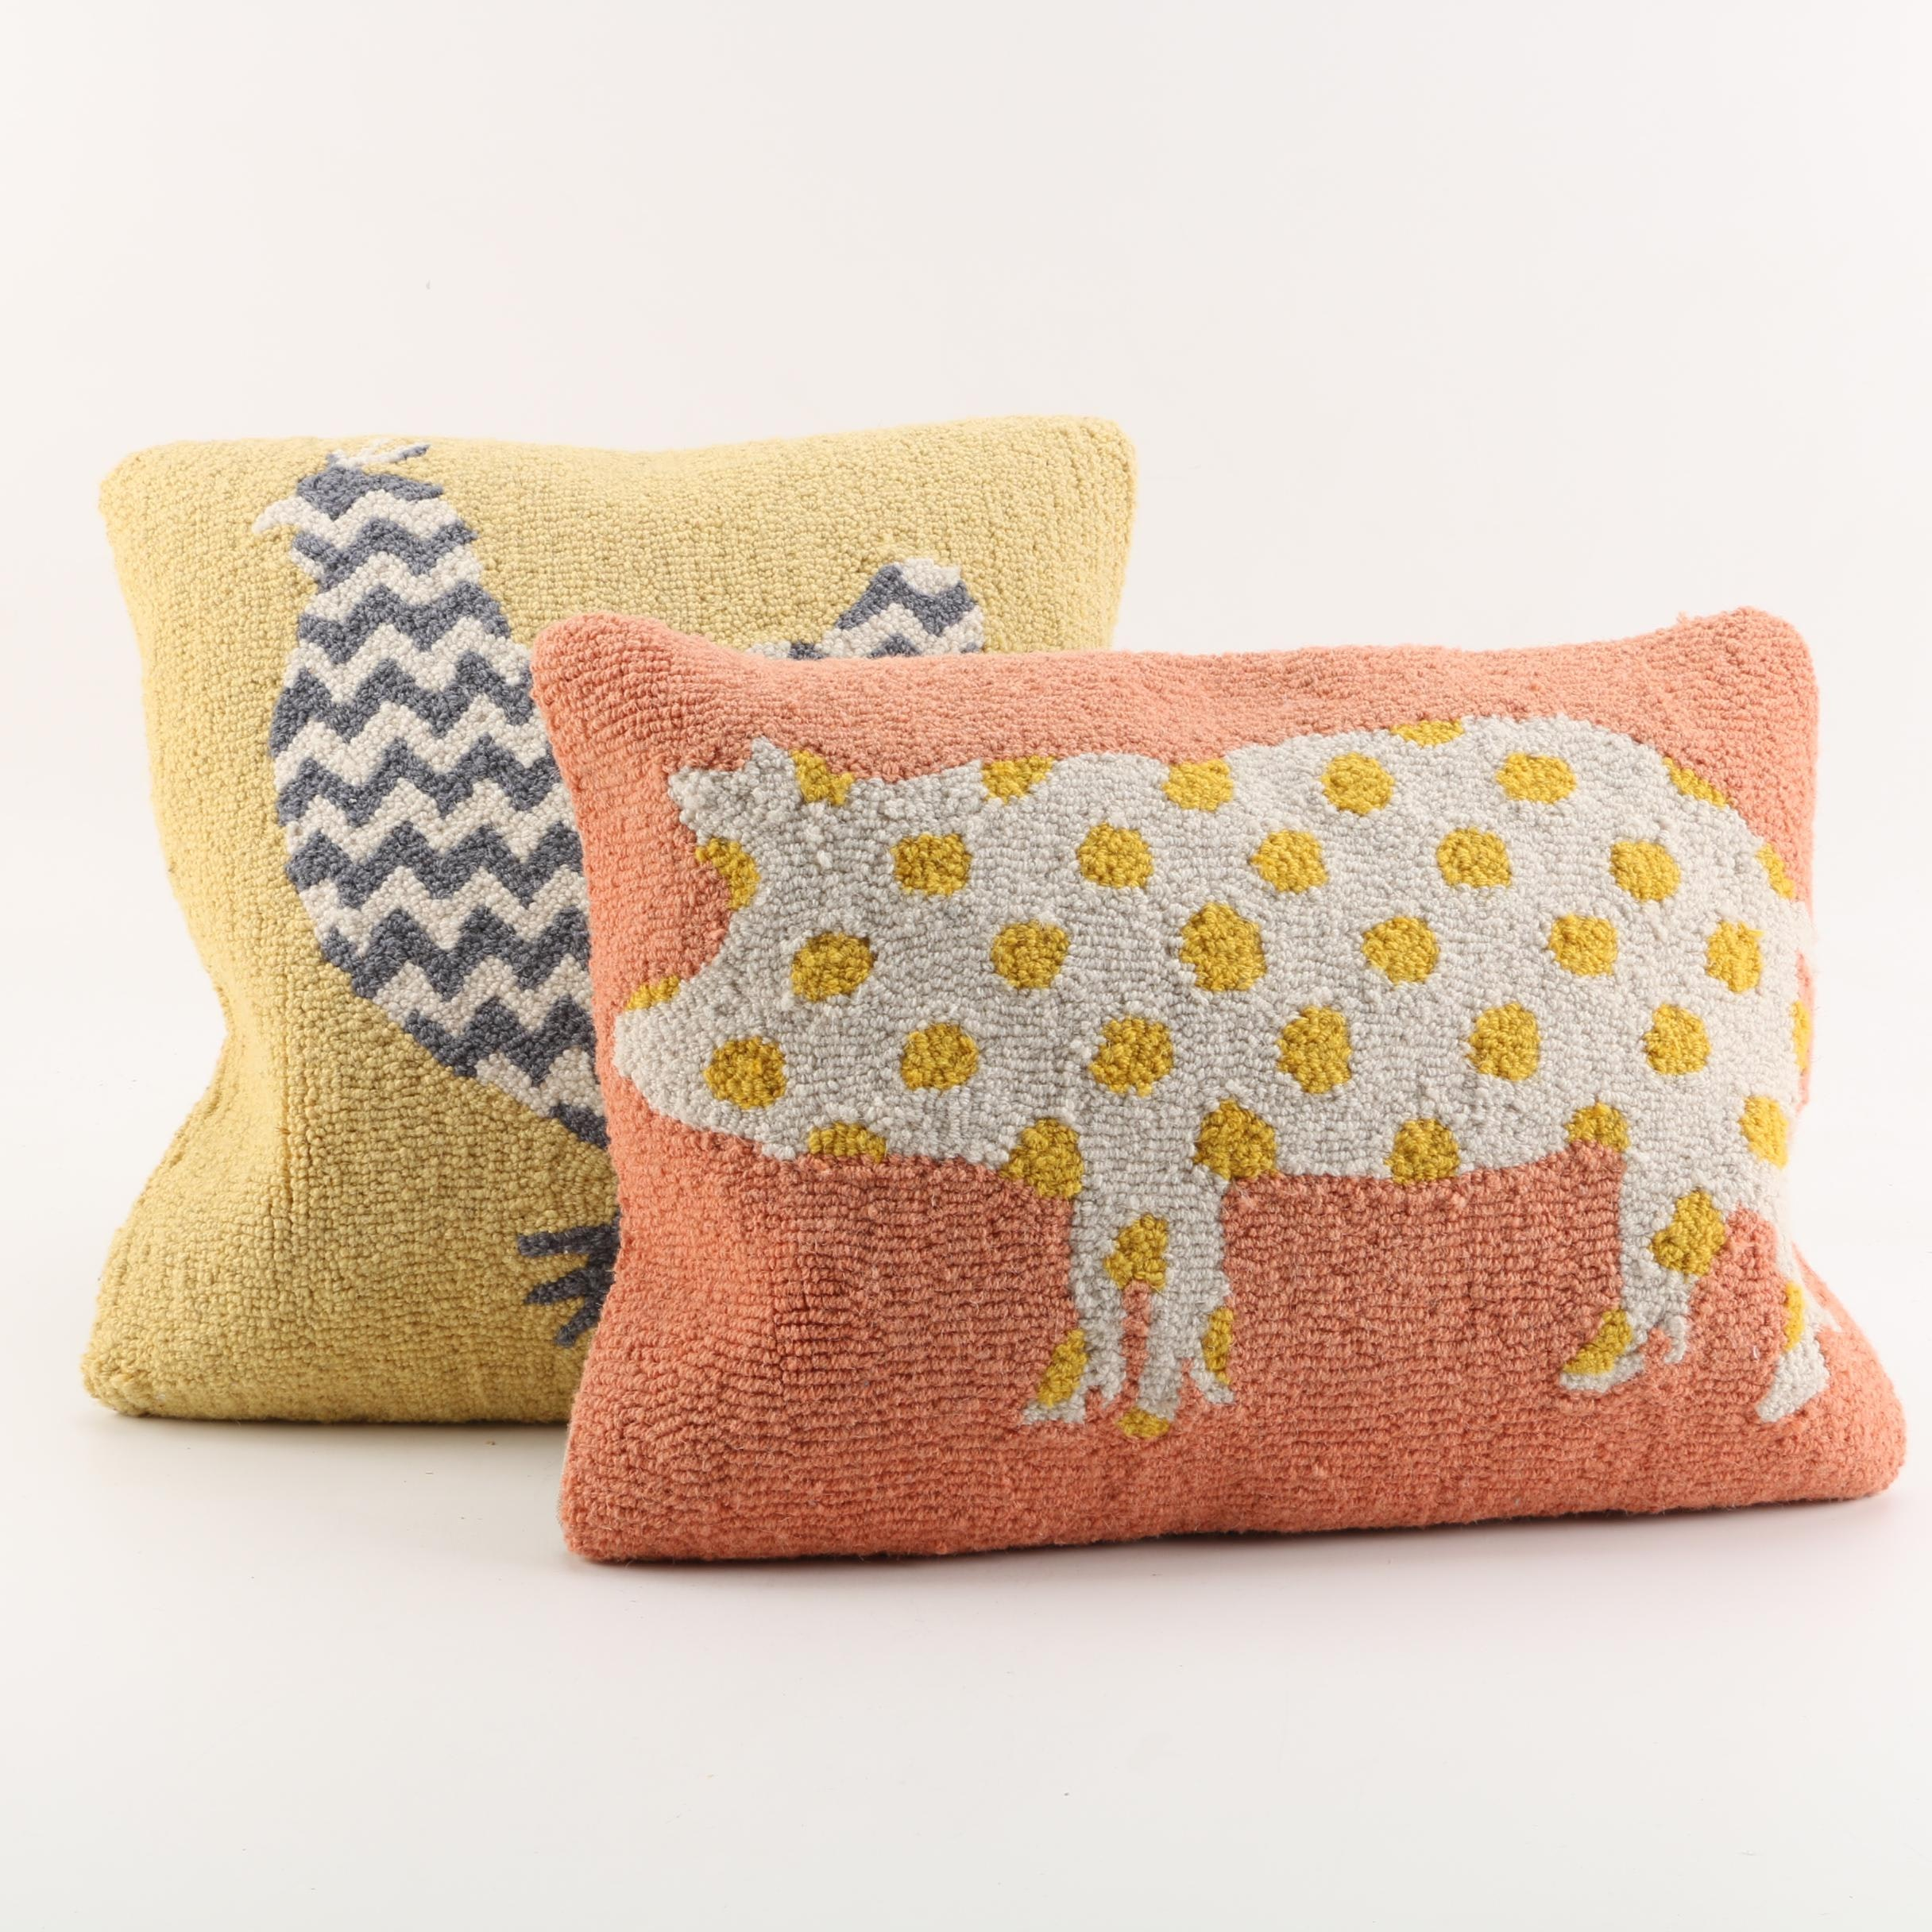 Whimsical Hooked Farm Animal Accent Pillows by Garnet Hill